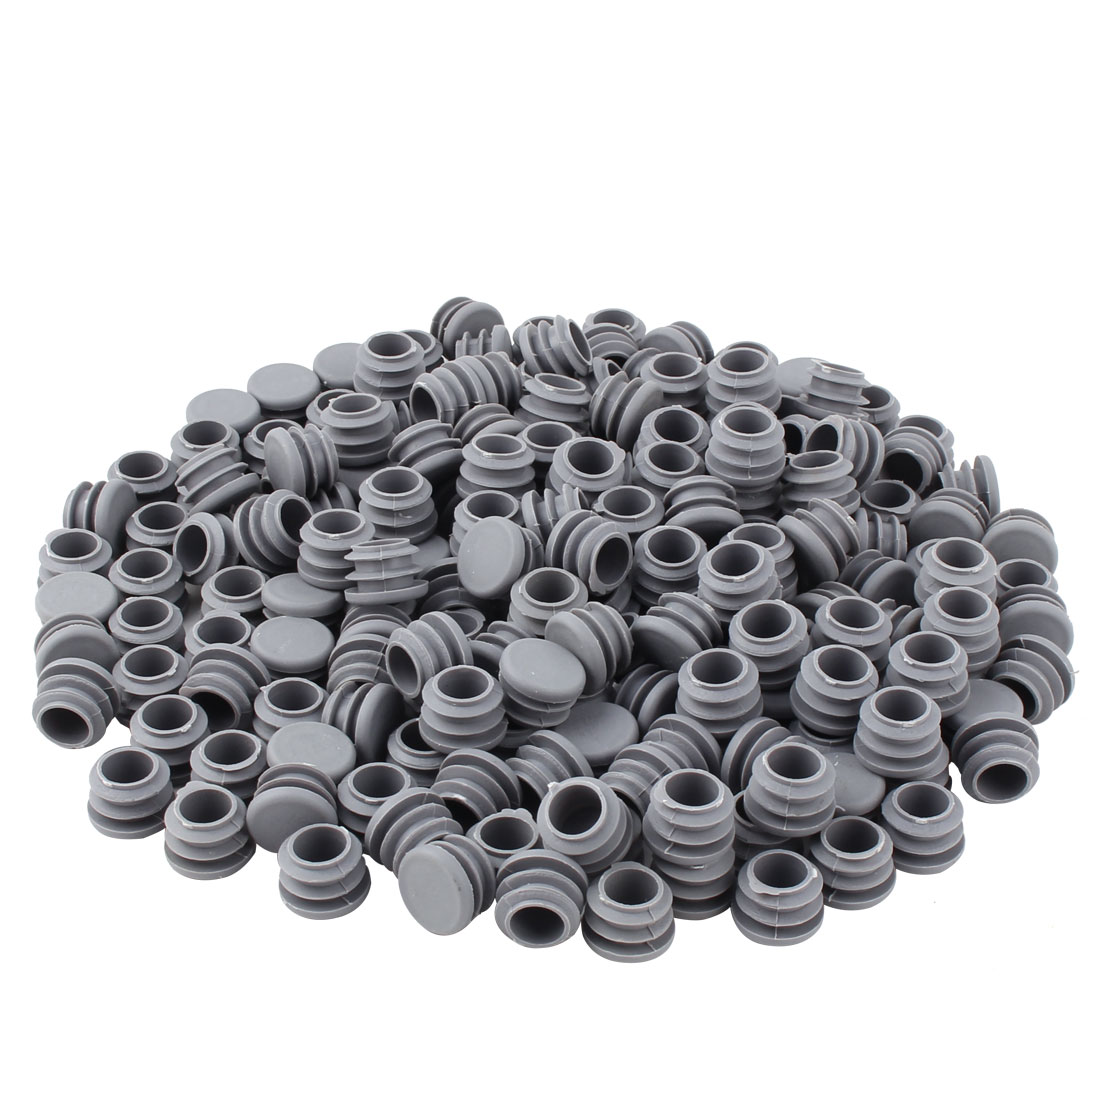 Furniture Table Chair Plastic Round Tube Pipe Insert Cover Protector Gray 19mm Dia 200pcs